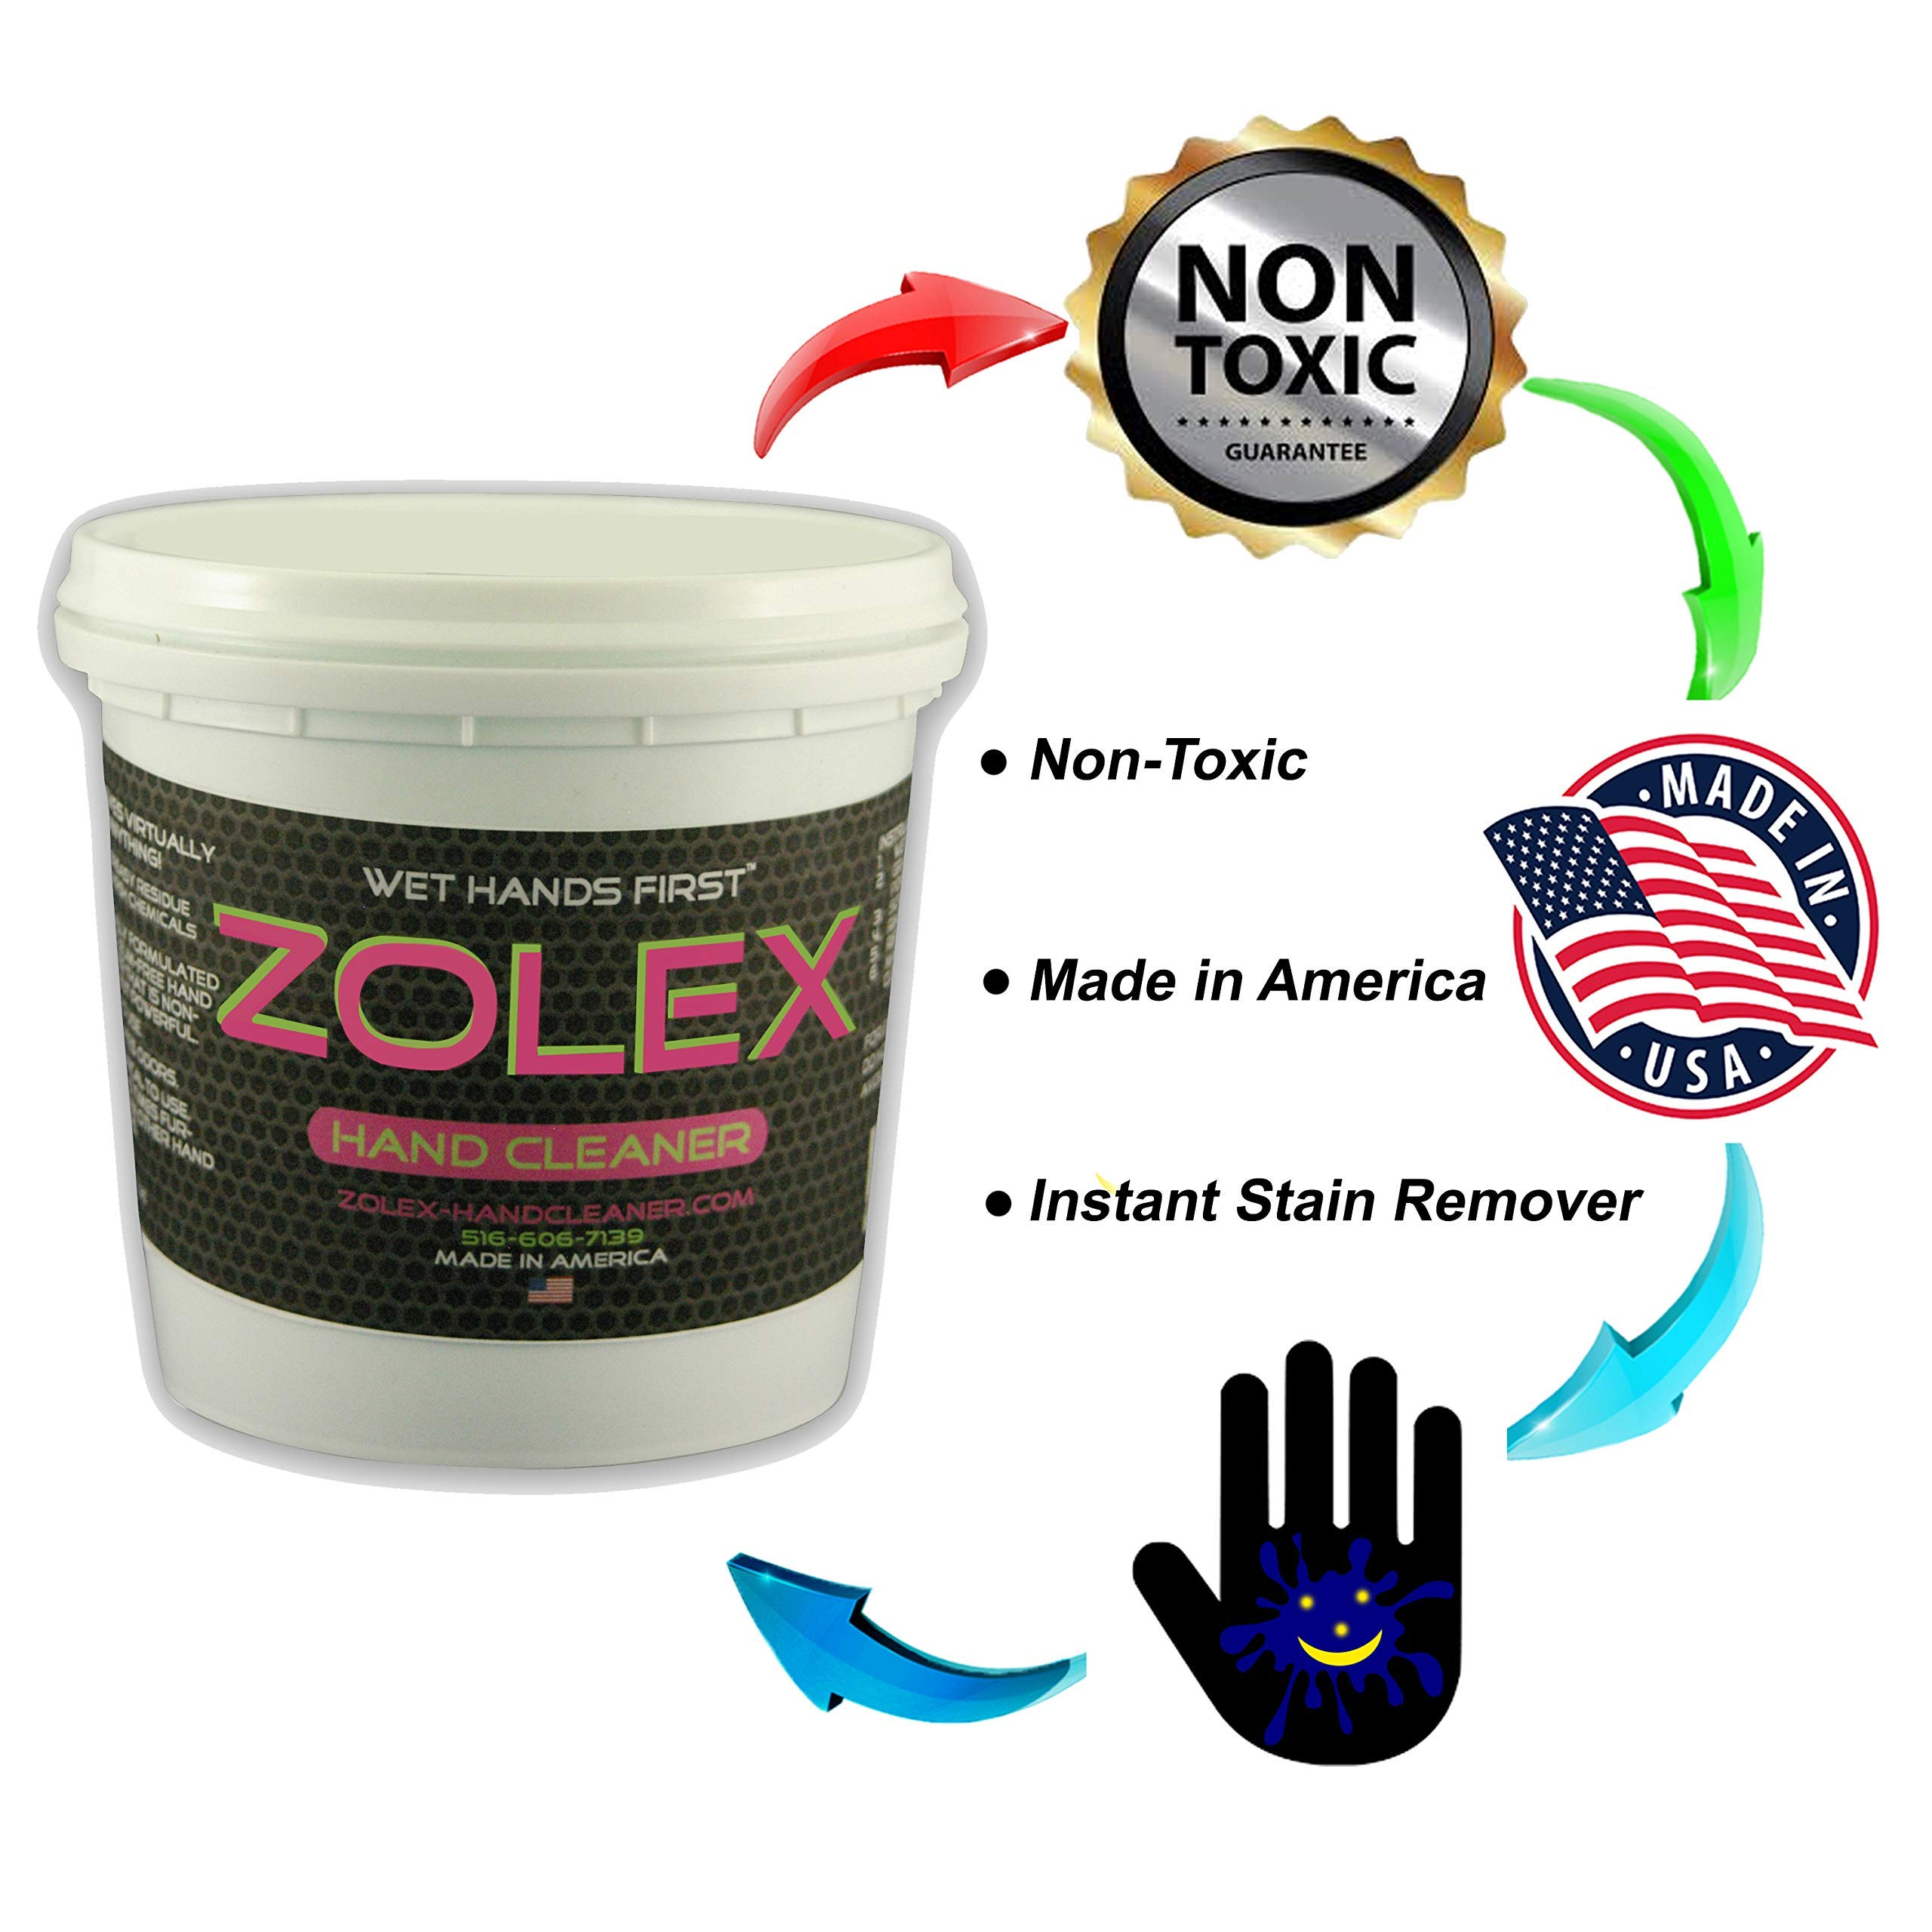 Zolex Water Activated Hand Cleaner for Working Hands| Stain Remover for Heavy Duty Workers | Grease Remover for Mechanics and Heavy Duty Workers - Non-Toxic Petroleum Free | Shop-Sized 3 lb. Tub | by Zolex (Image #2)